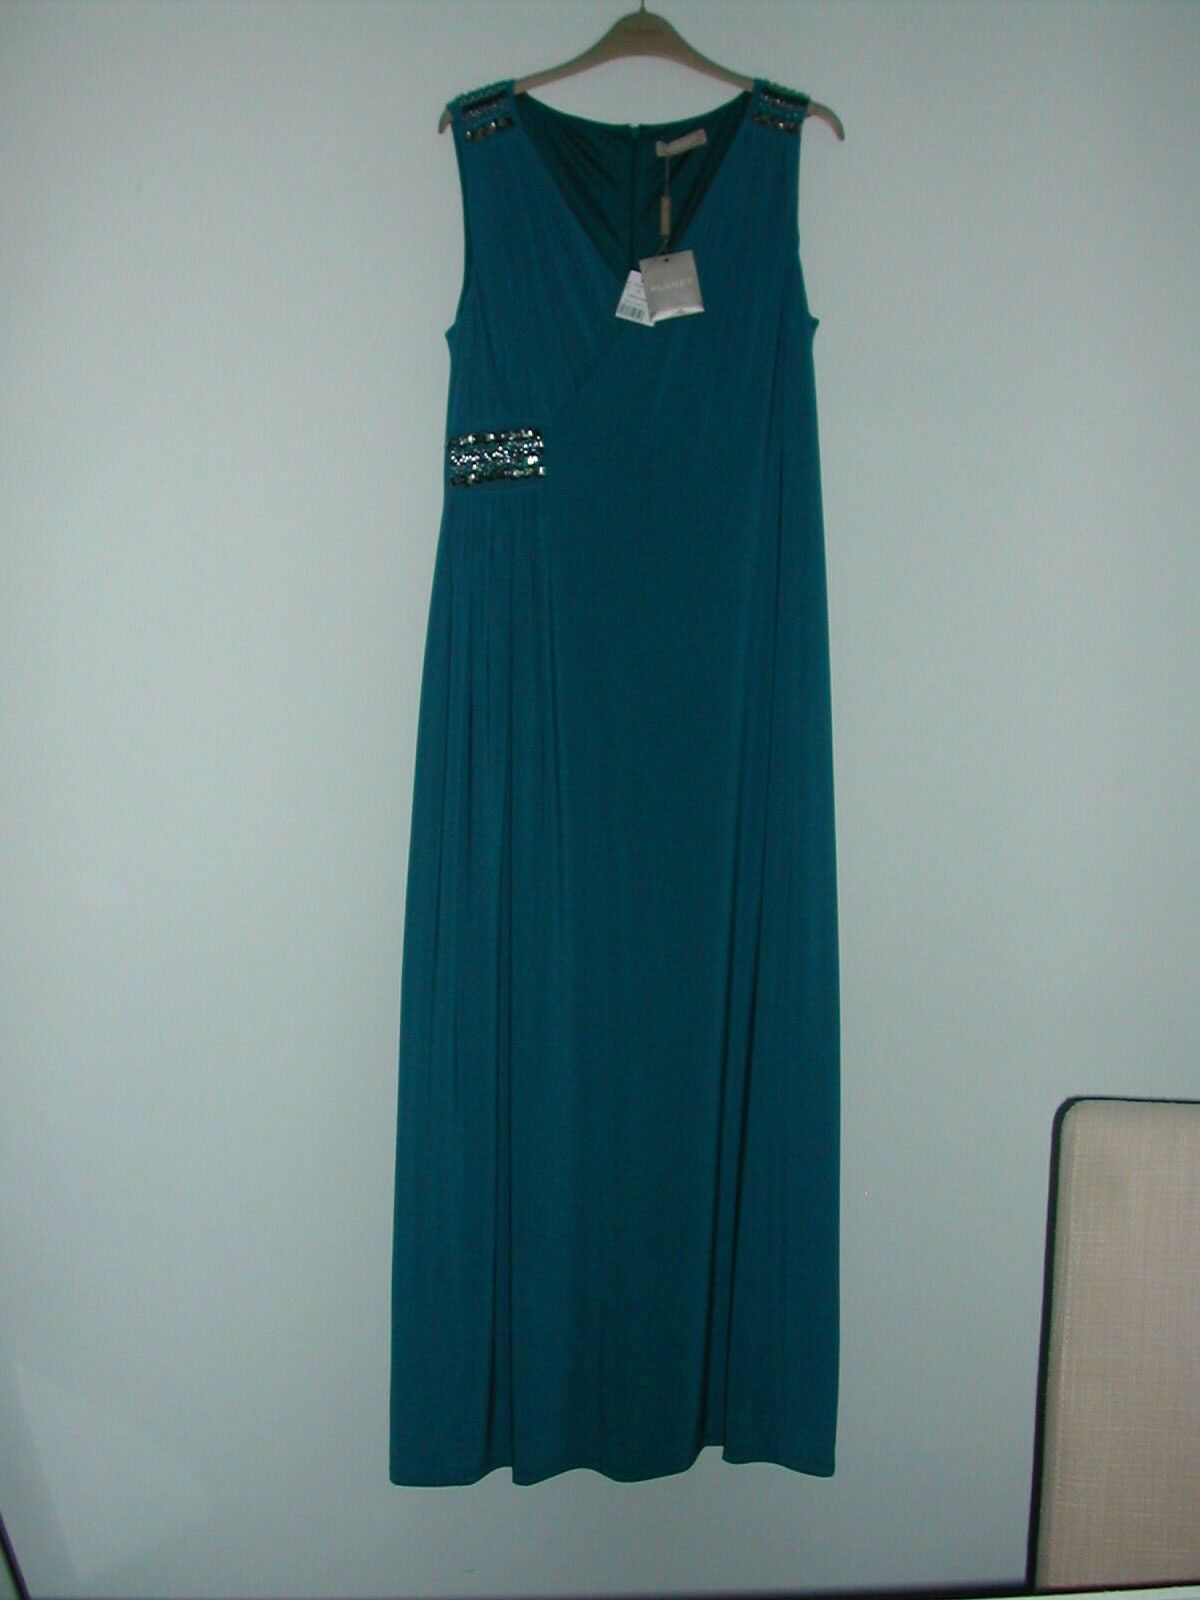 8338f5b71343d6 LADIES MAXI EMBELLISHED DRESS - PLANET - BNWT - - SIZE 12 JADE owikyj2321- Dresses